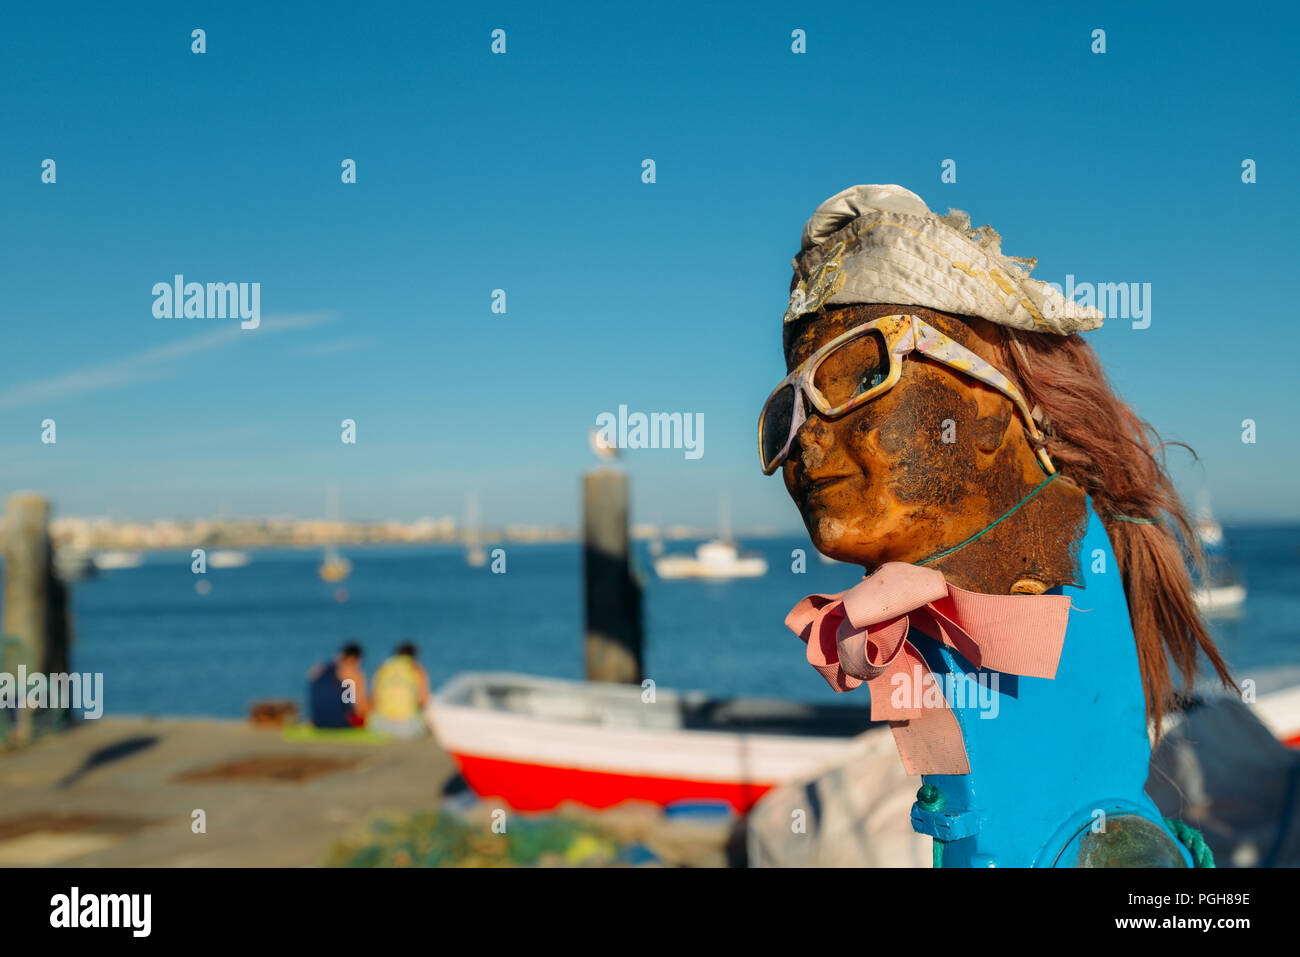 face-of-dirty-doll-with-sunglasses-and-ponytail-on-mast-of-a-wooden-boat-PGH89E.jpg